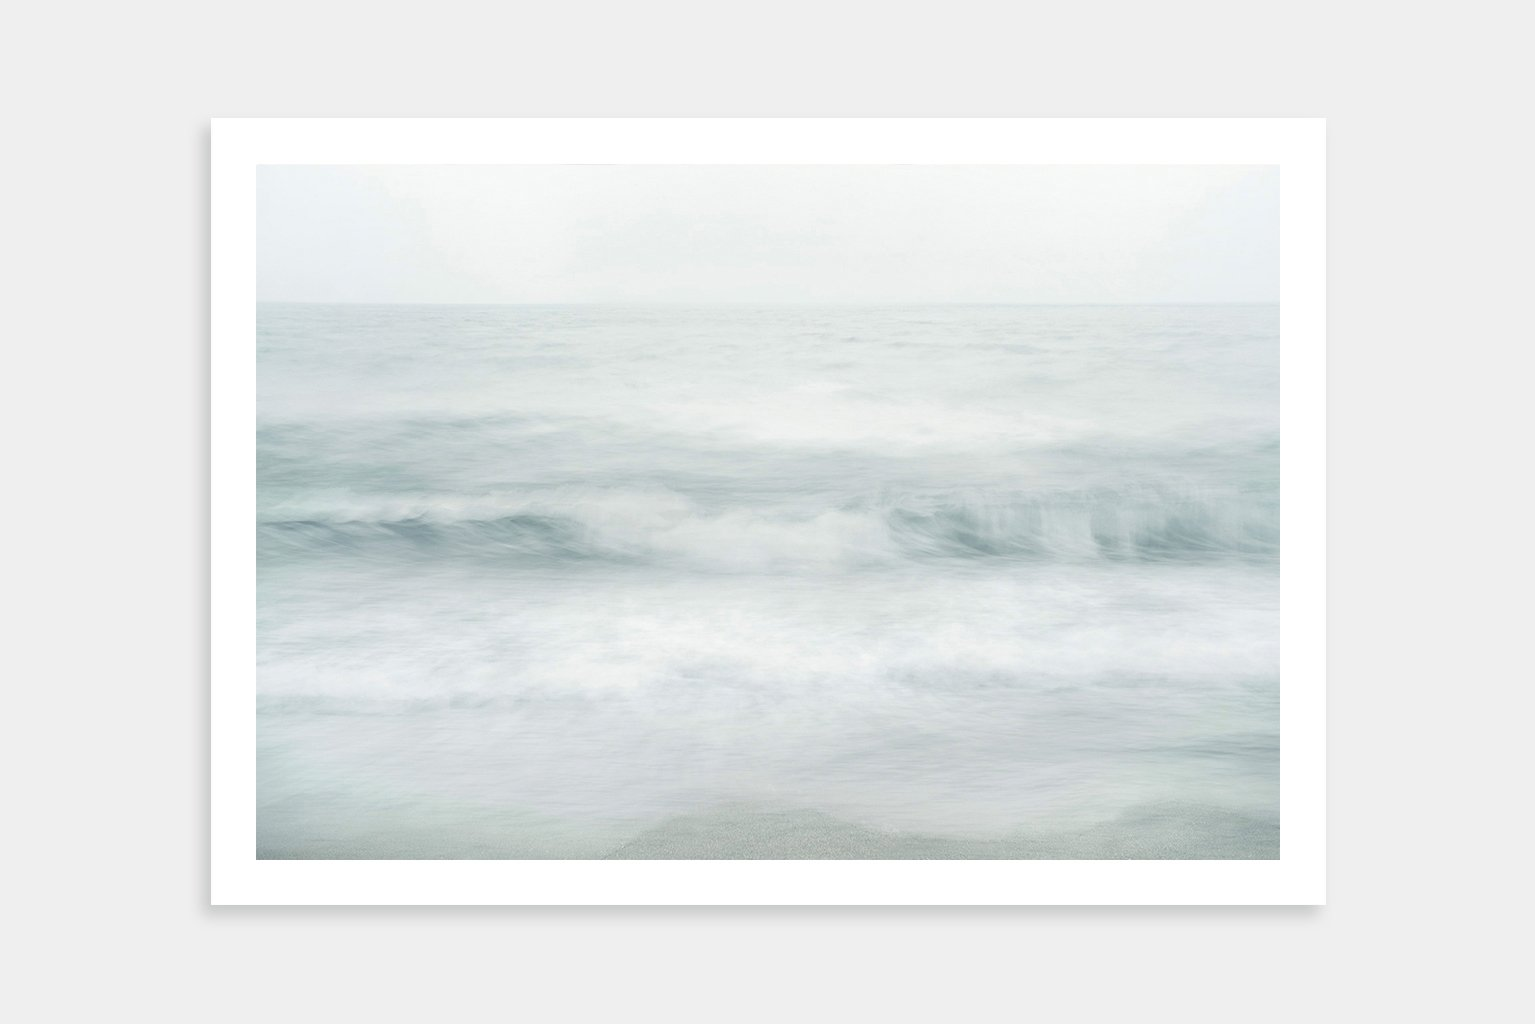 ocean artwork for home walls